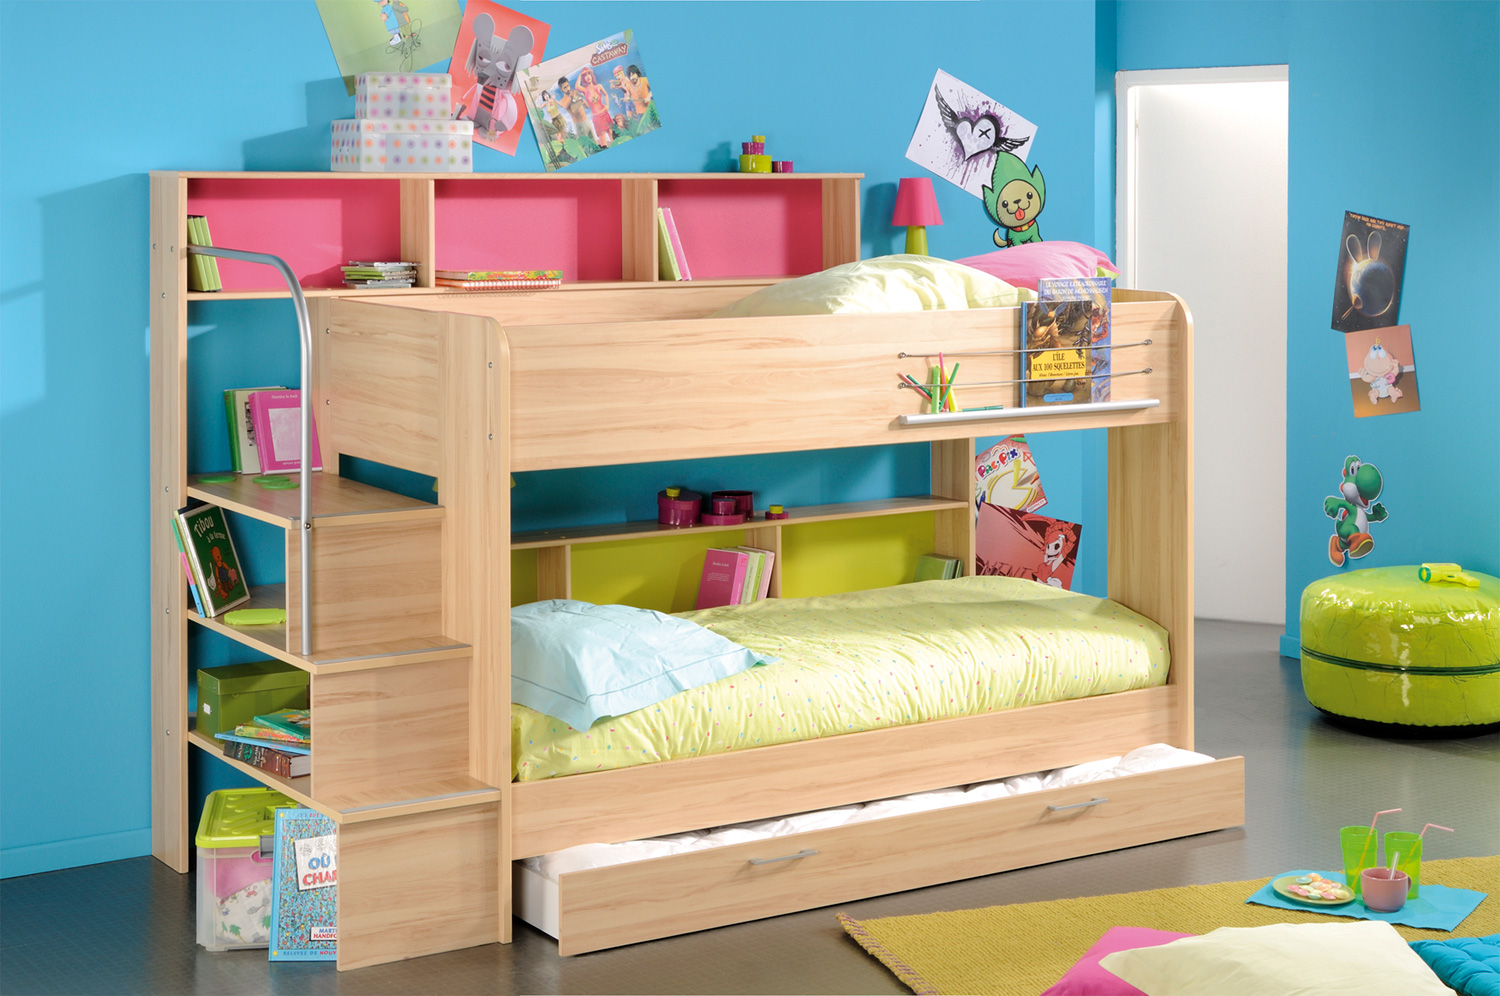 space saving stylish bunk beds for your home. Black Bedroom Furniture Sets. Home Design Ideas